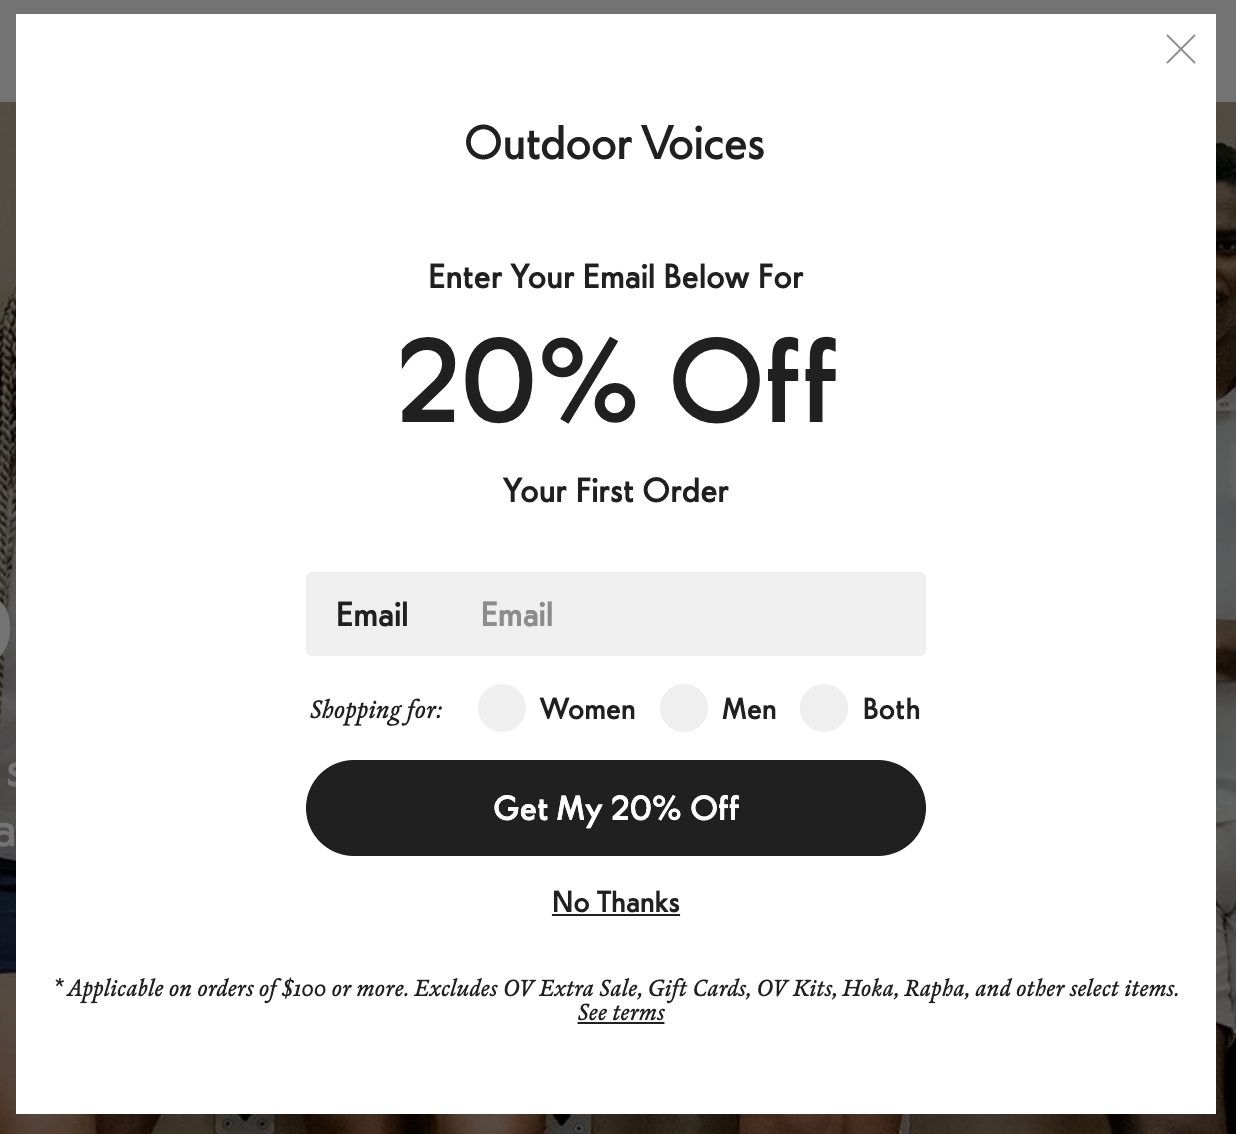 Outdoor Voices' email CTA